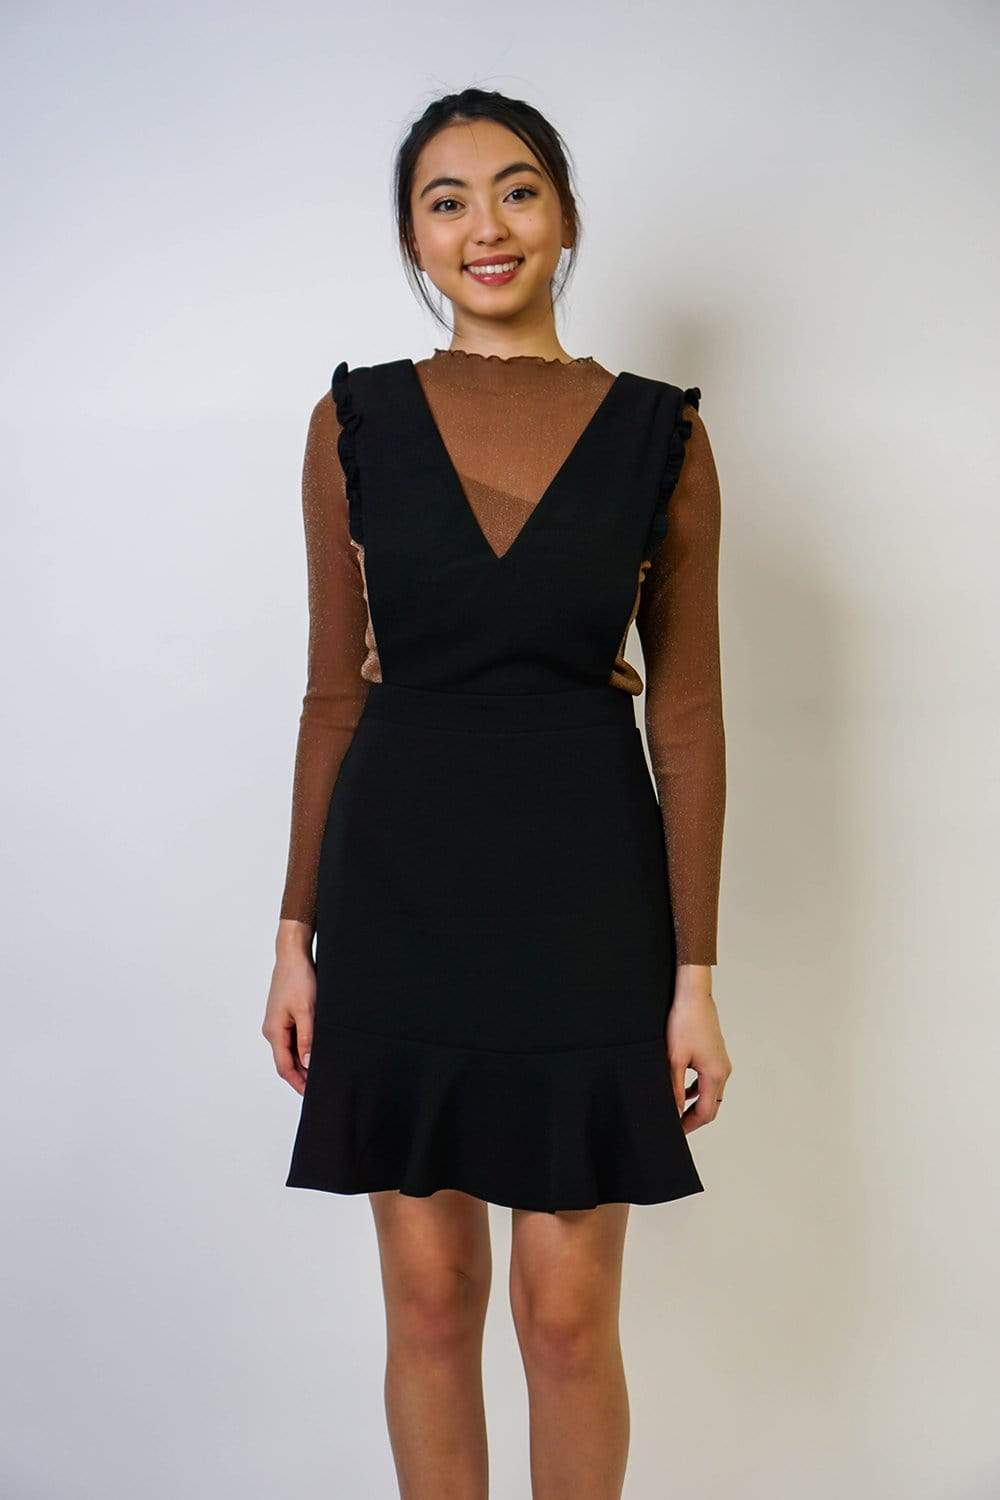 Dress Overlay Apron Black Dress - Chloe Dao